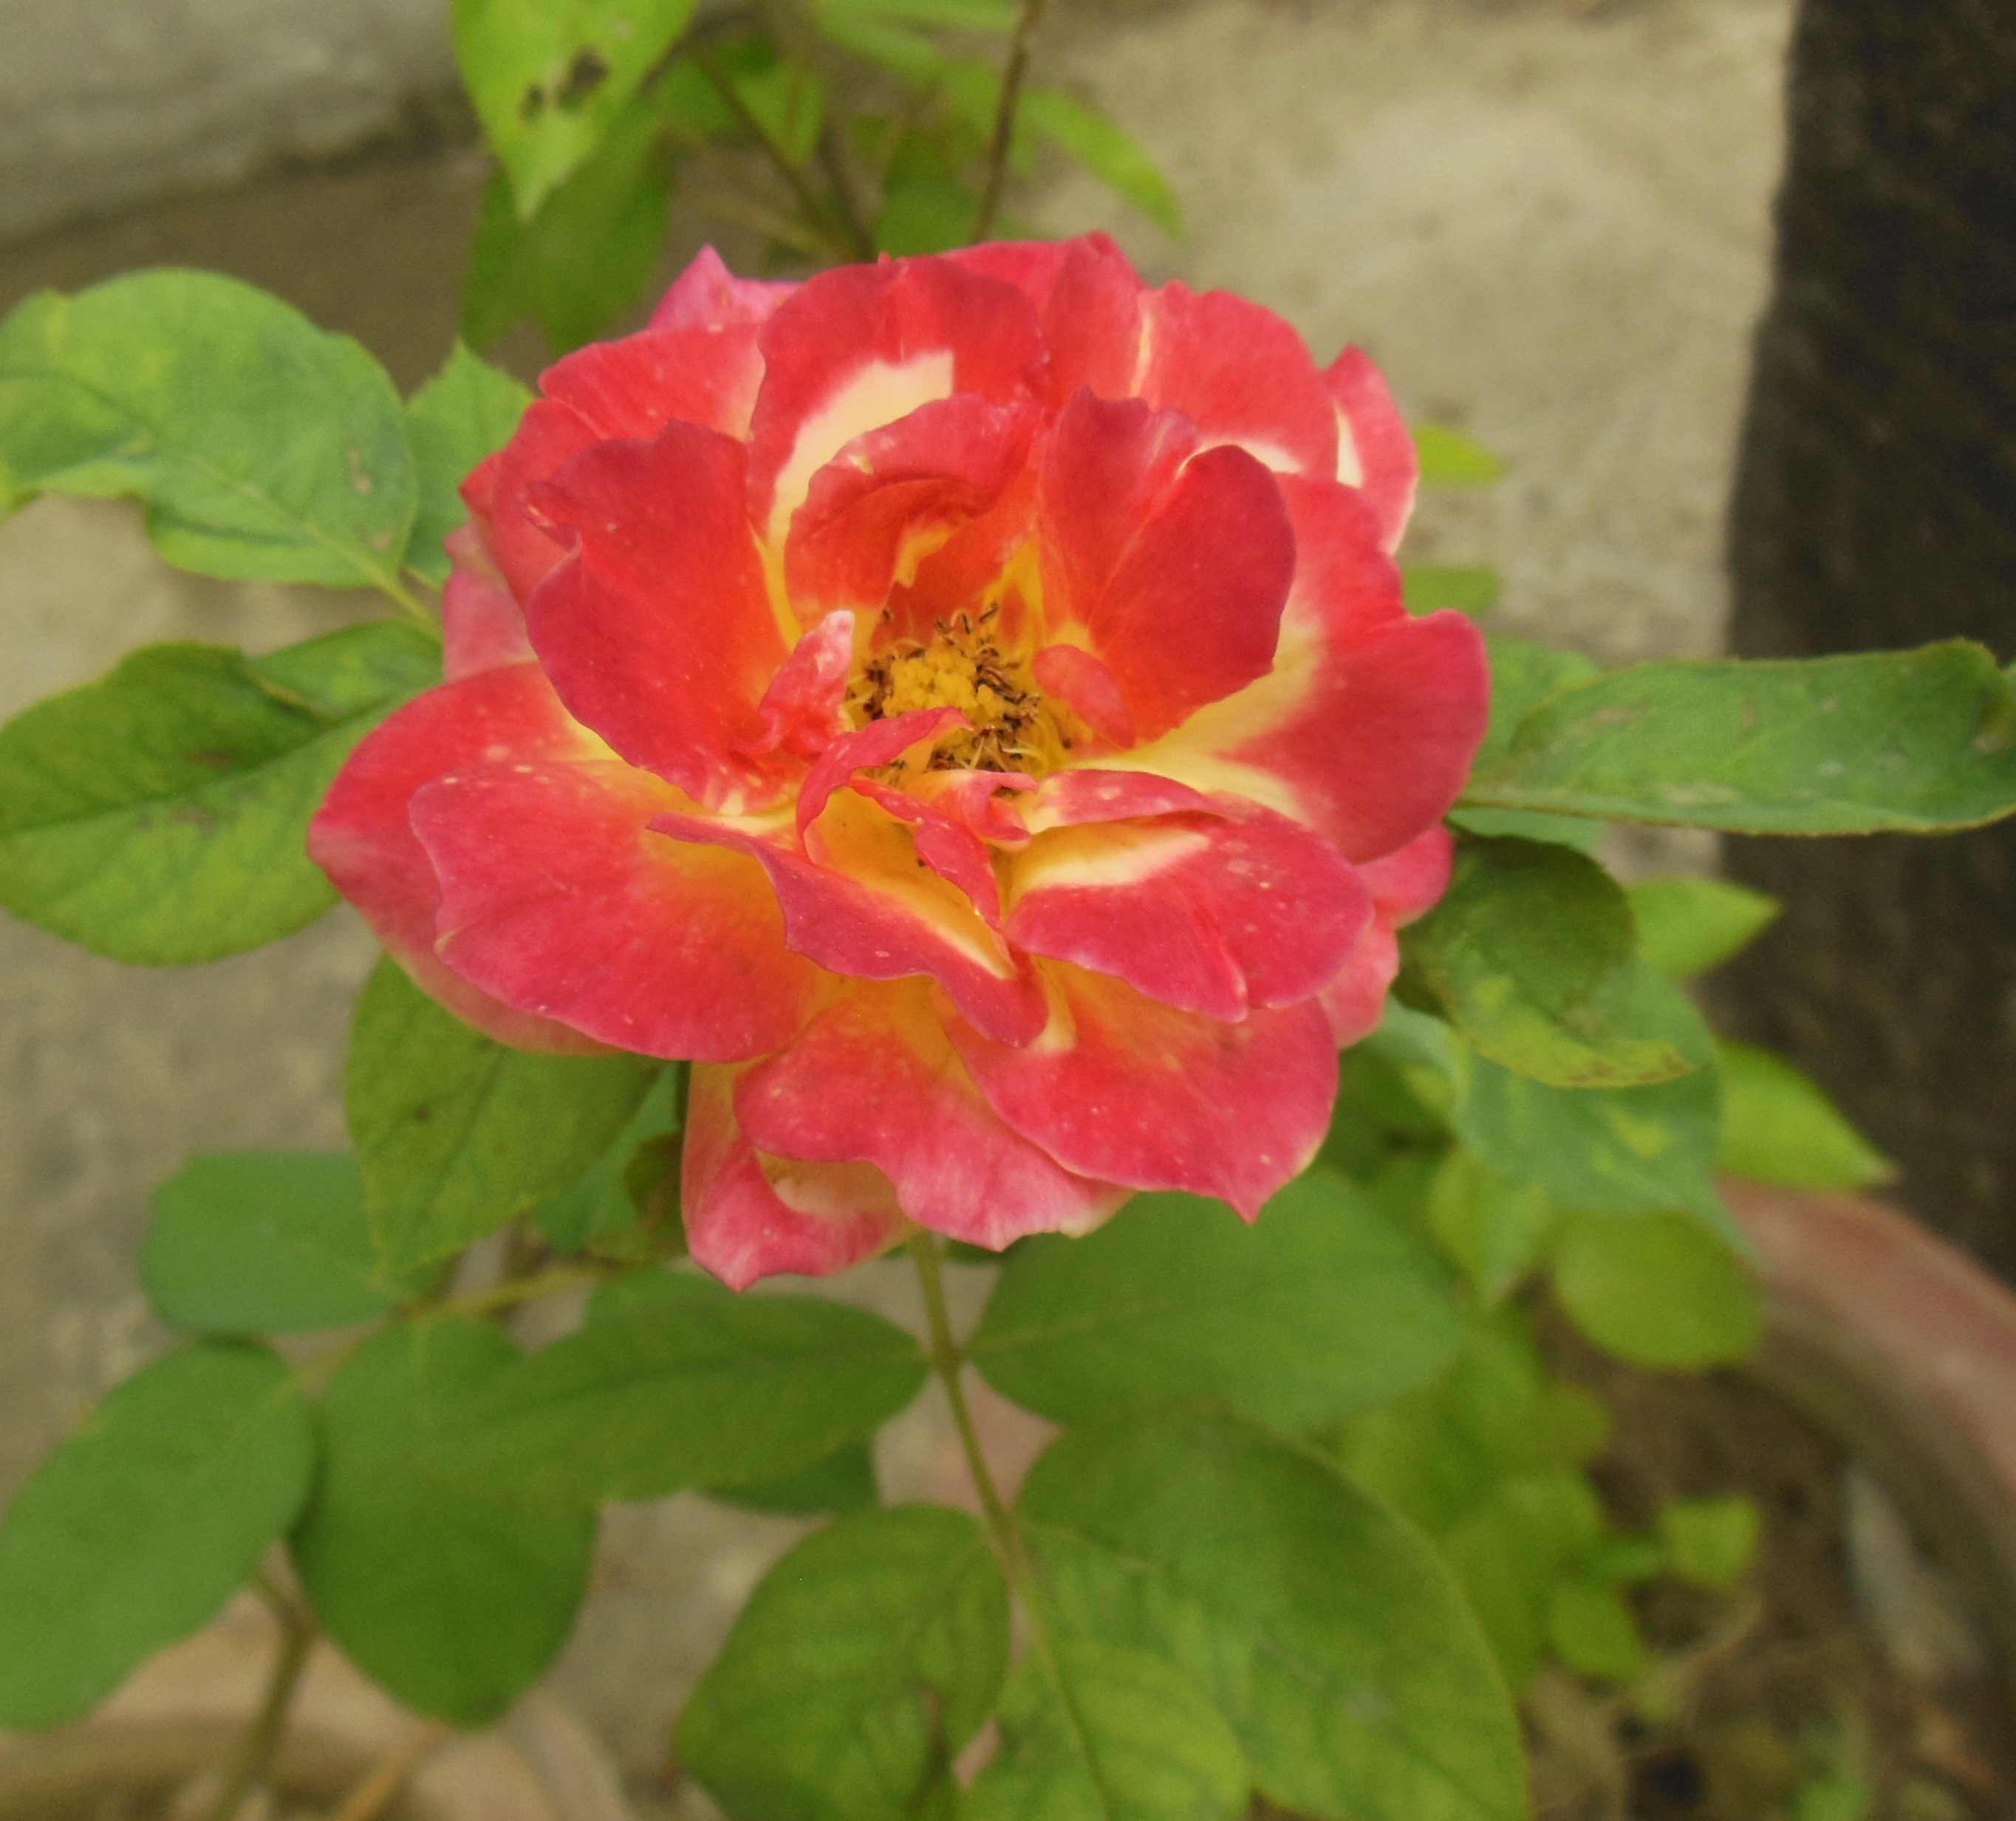 File:Hybrid Tea Rose Multi color red yellow 2 (3).JPG - Wikimedia ...